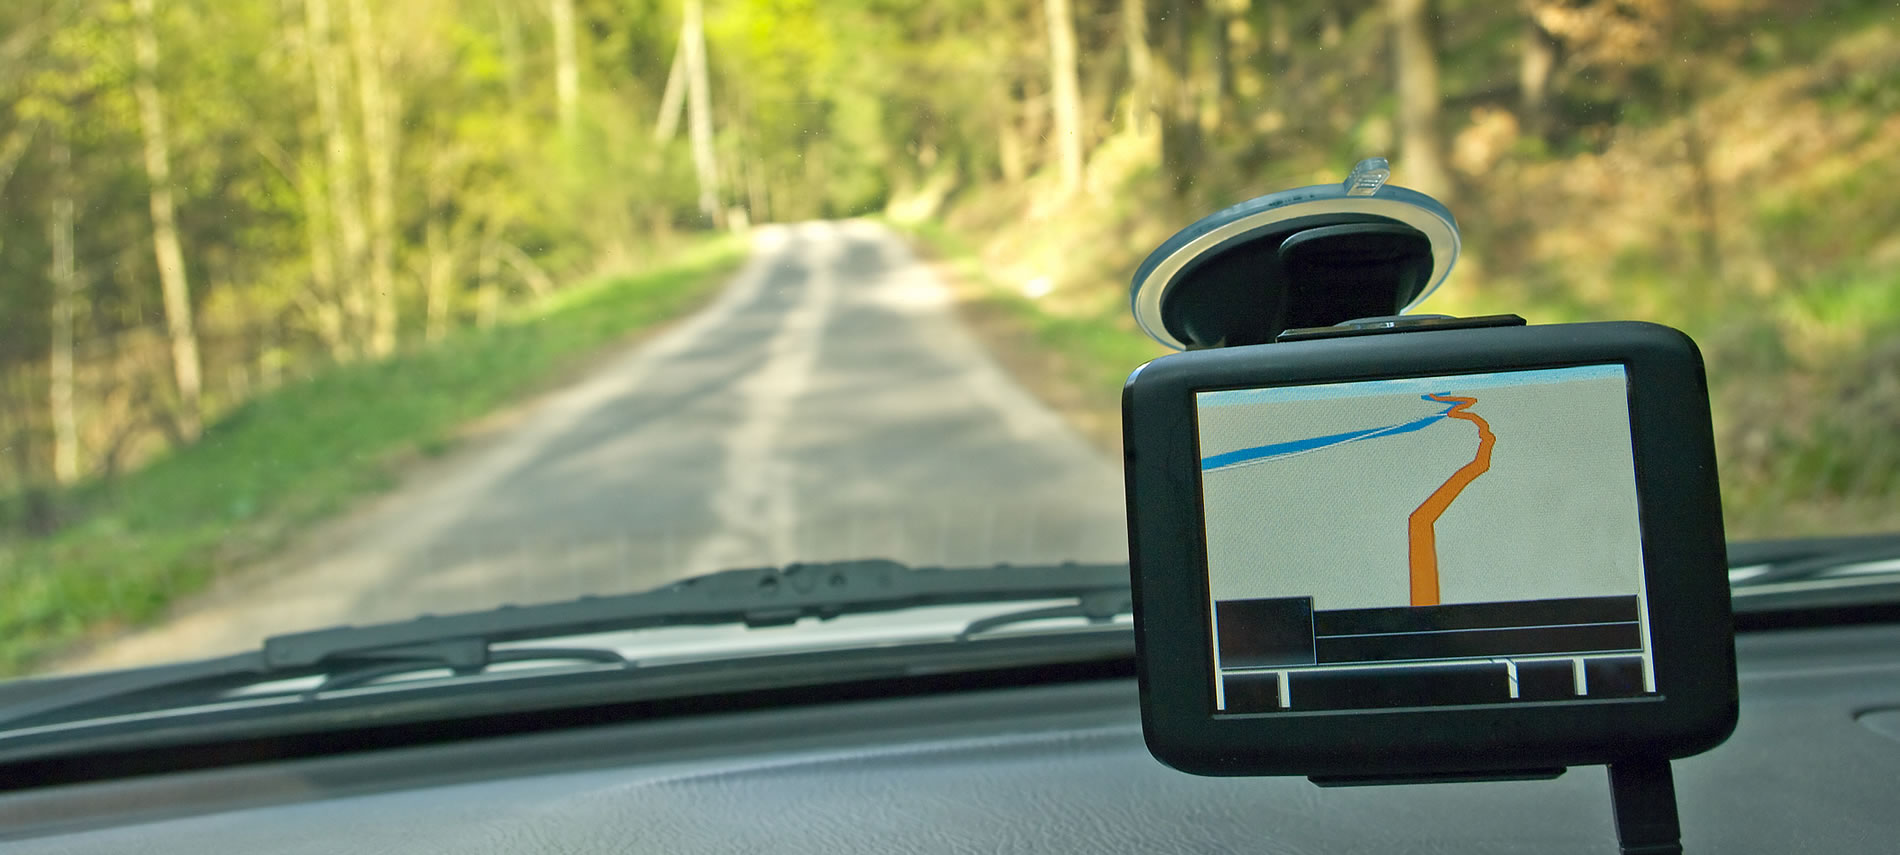 A car drving down a road with green trees and grass using a GPS on dash.